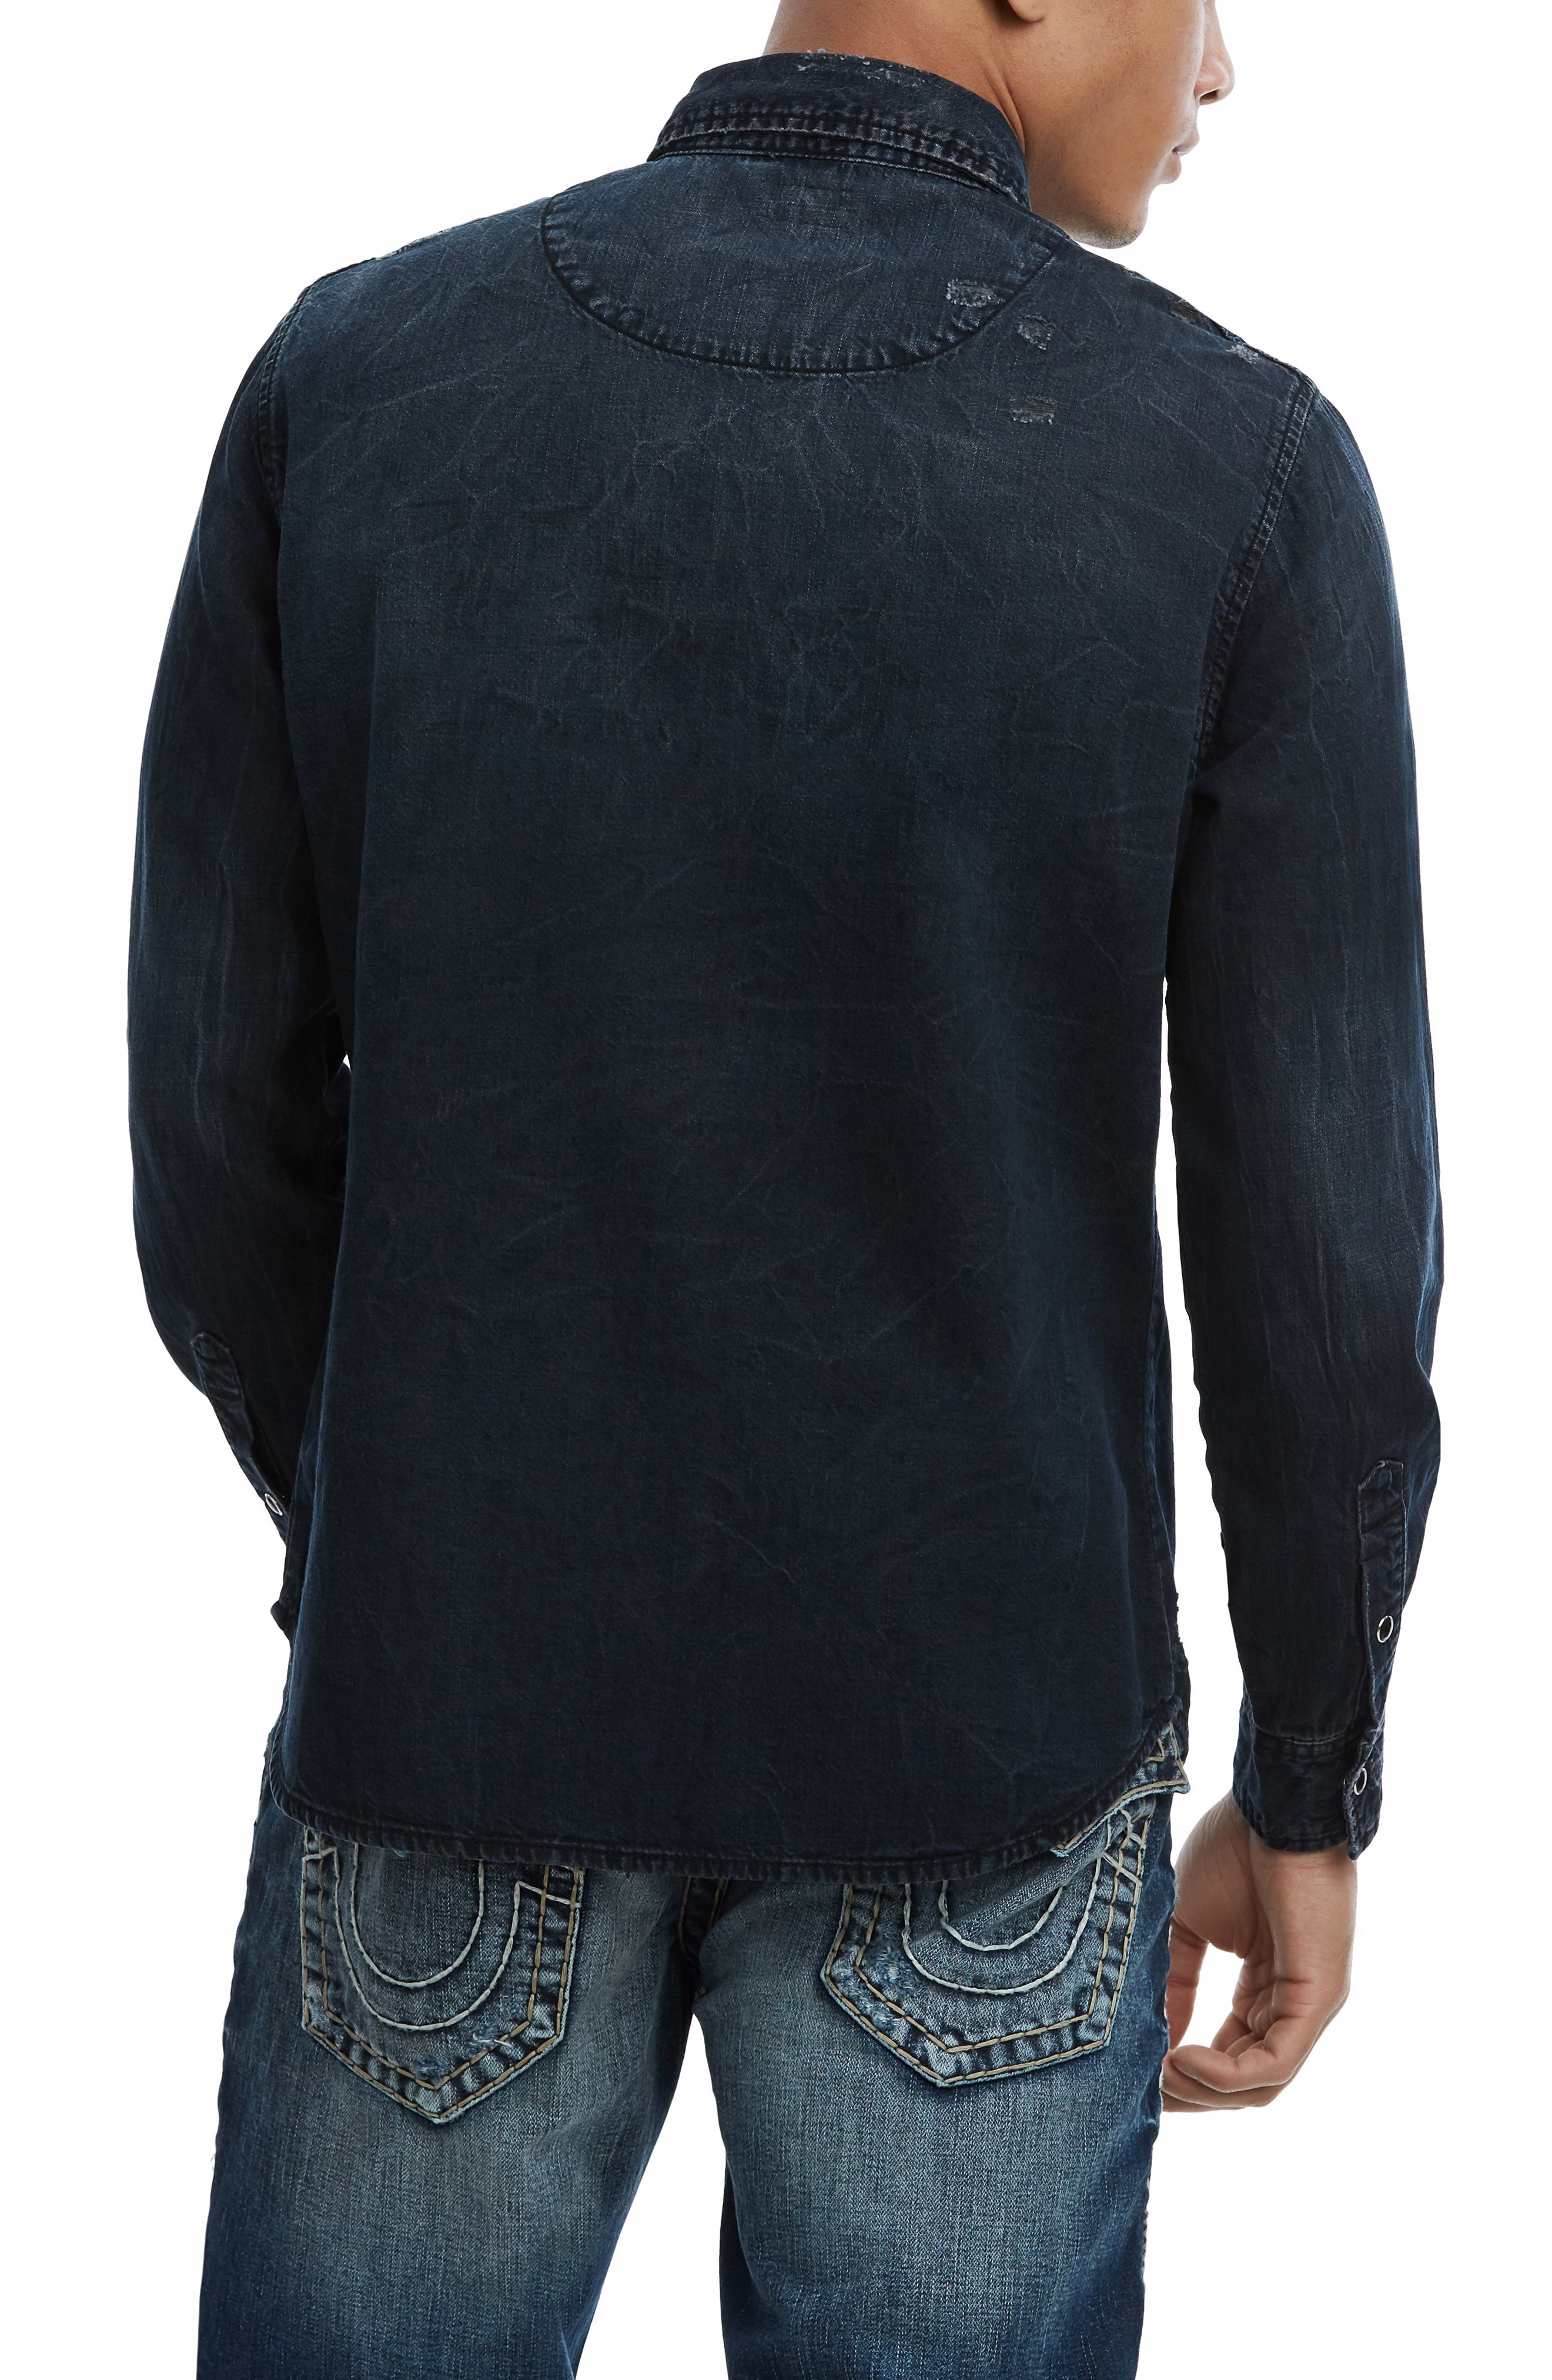 Carter Distressed Denim Shirt,                             Alternate thumbnail 2, color,                             INDIGO RIVAL